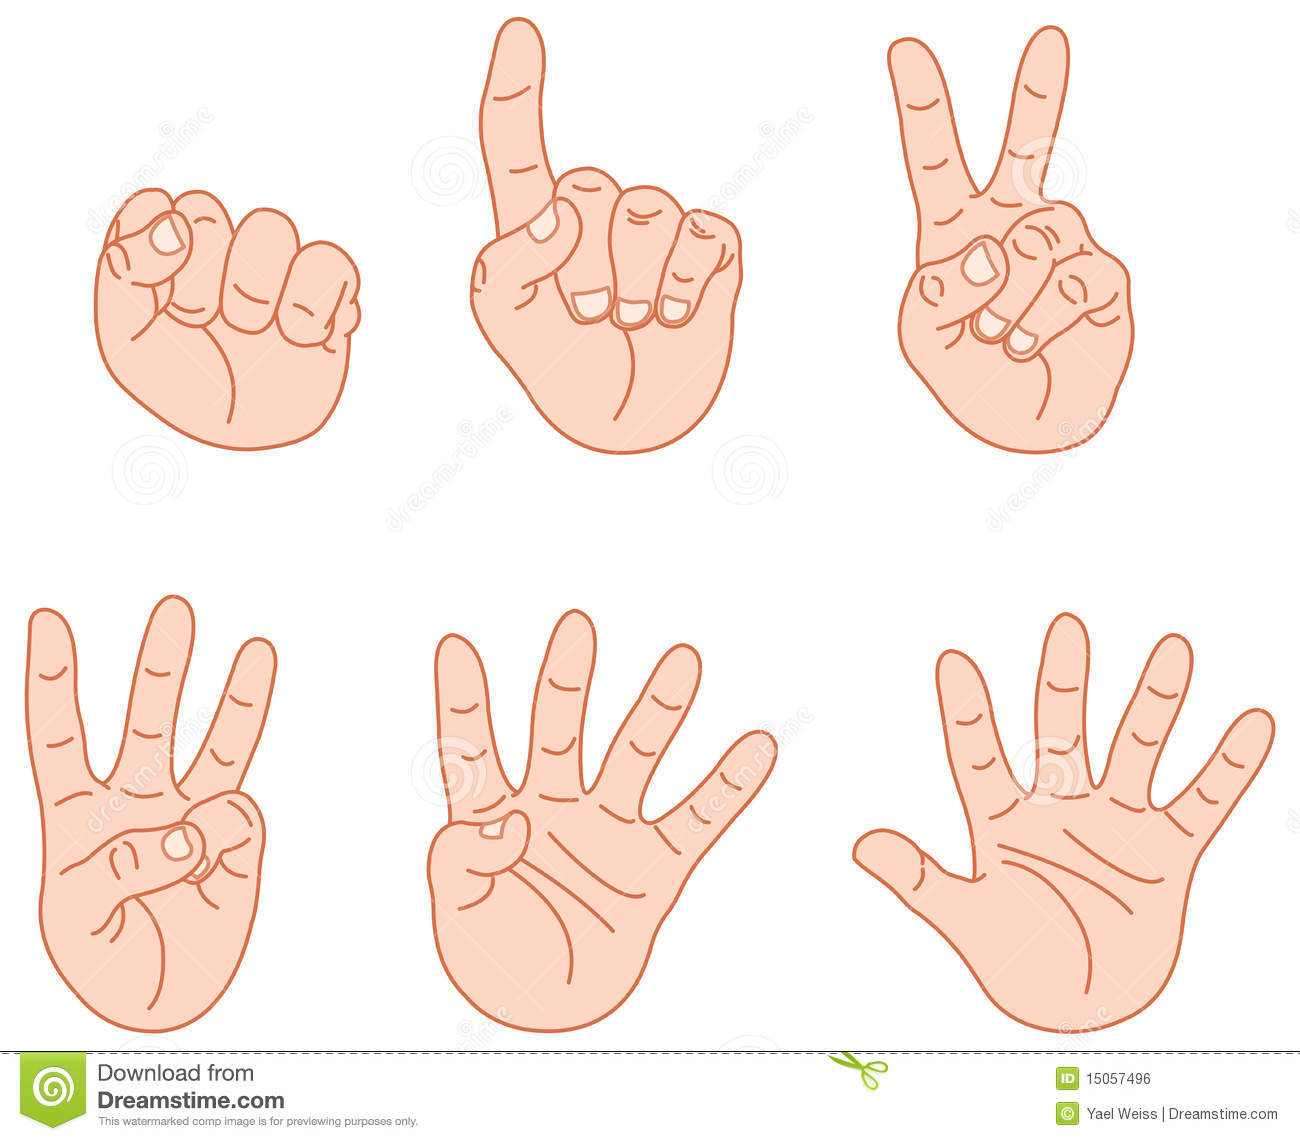 Counting Fingers Royalty Free Stock Image - Image: 15057496